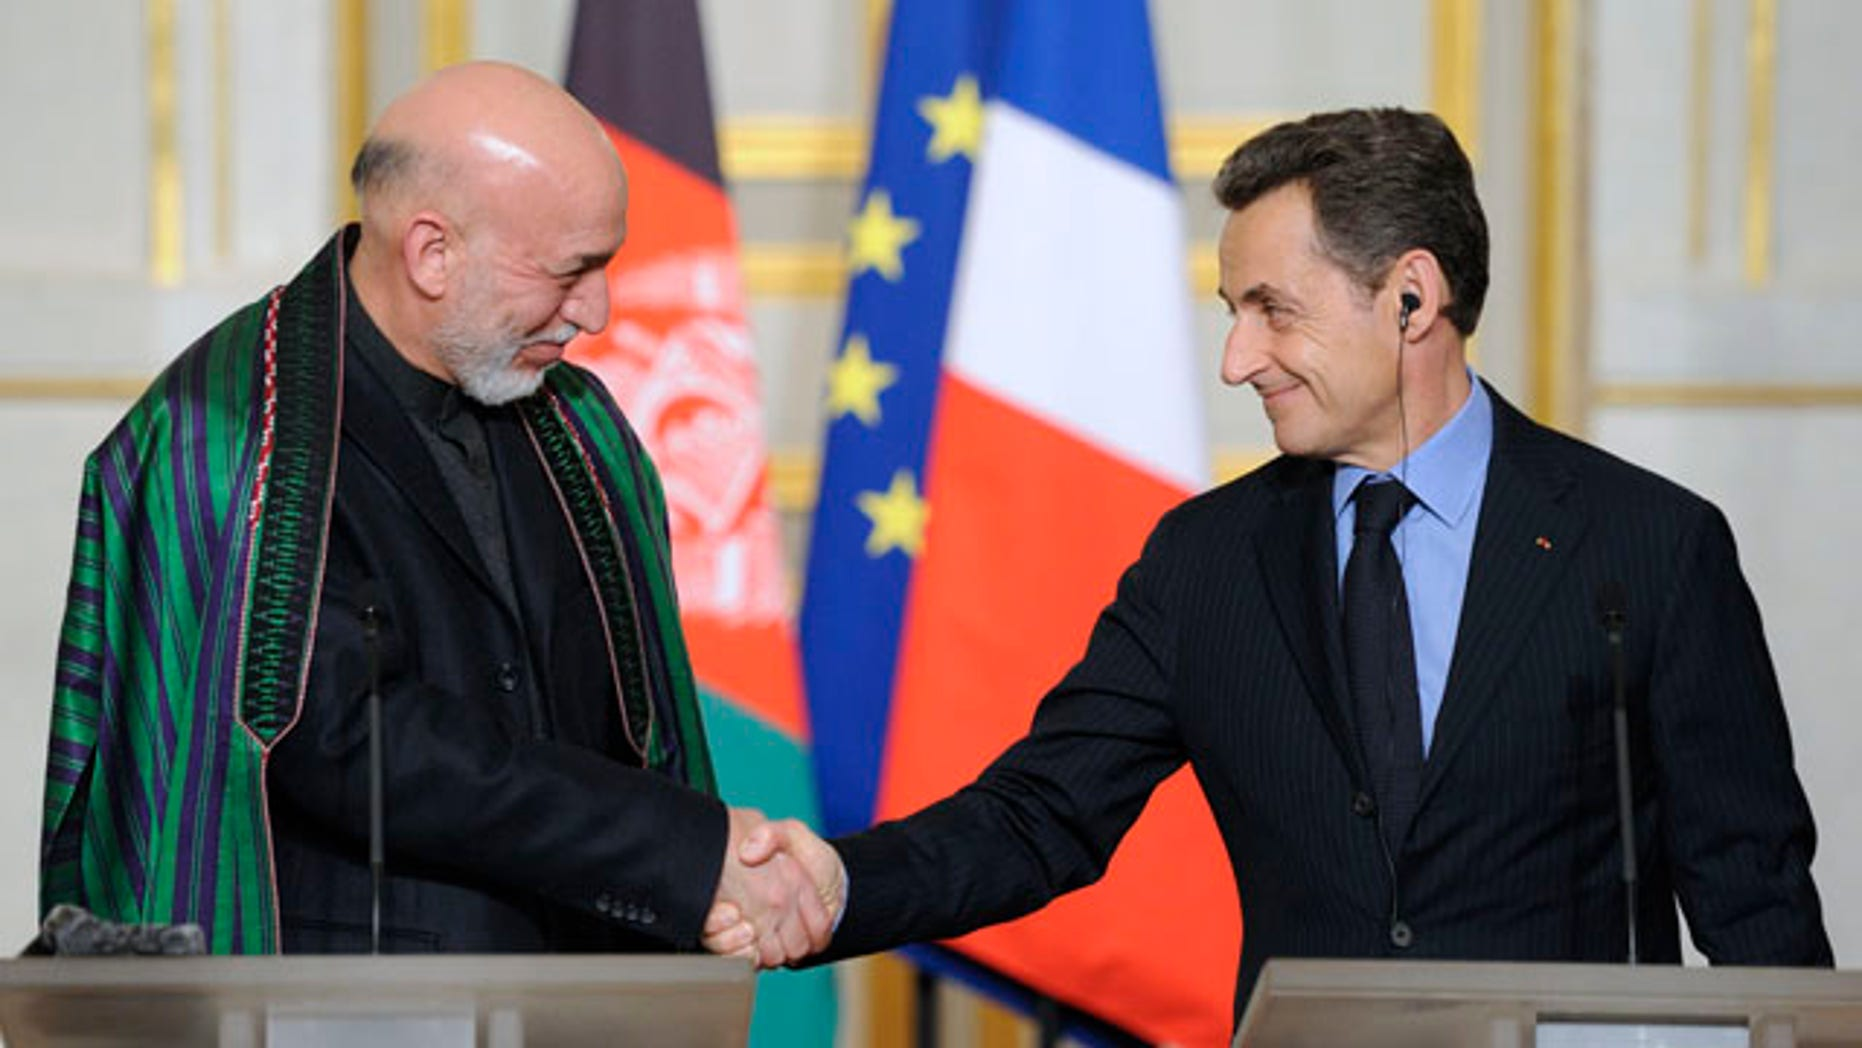 Jan. 27, 2012: Afghan president Hamid Karzai, left, shakes hands with French President Nicolas Sarkozy, right, following a news conference at the Elysee palace in Paris.